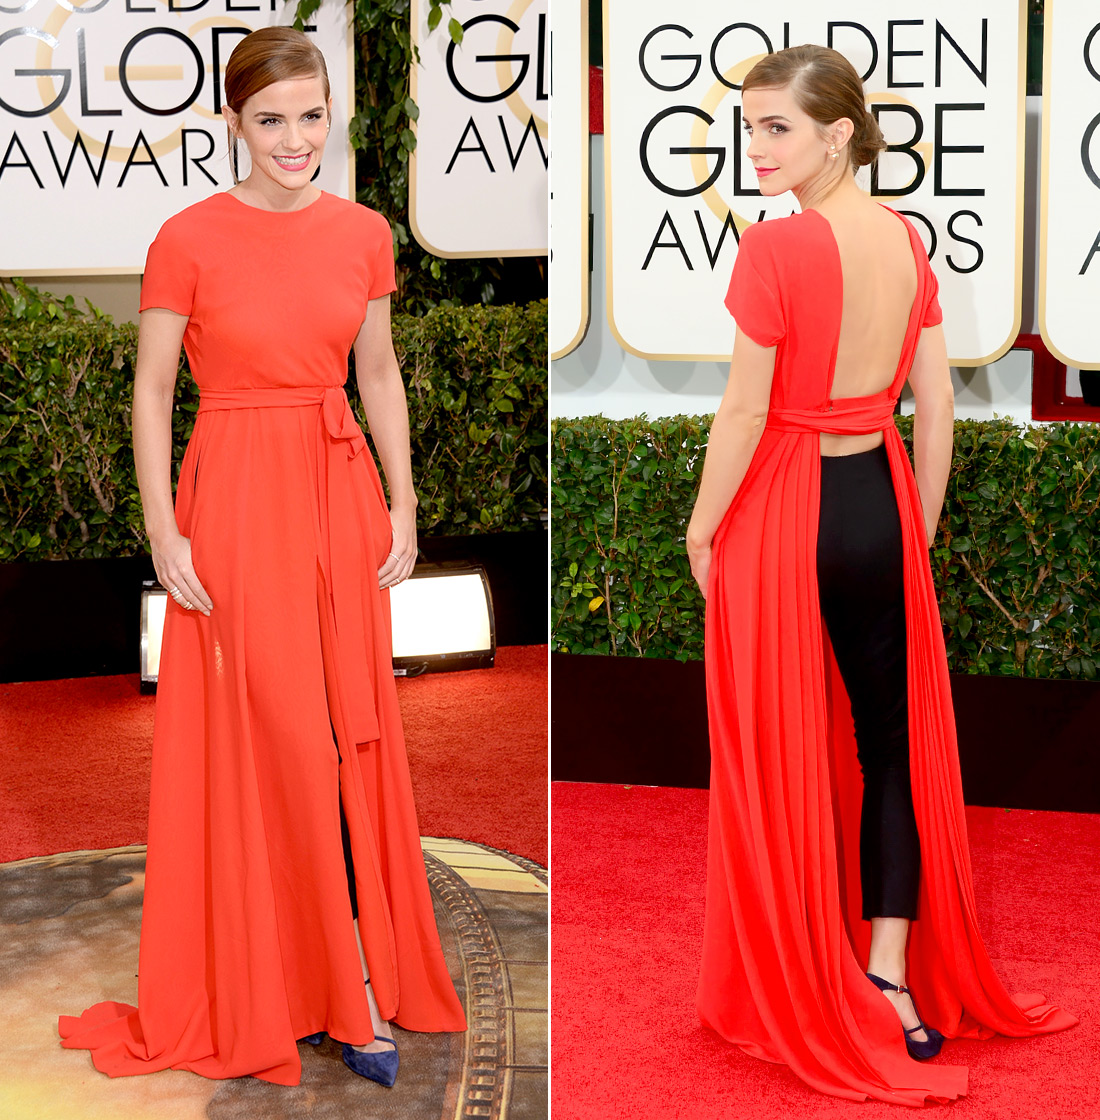 Emma turned heads (and her own back!) at the 2014 Golden Globe Awards, taking a style risk in Beverly Hills. She did a little business in the front, party in the back, with a Christian Dior number that appeared to be a classic red gown but showed off a pair of black cropped pants with its open back.